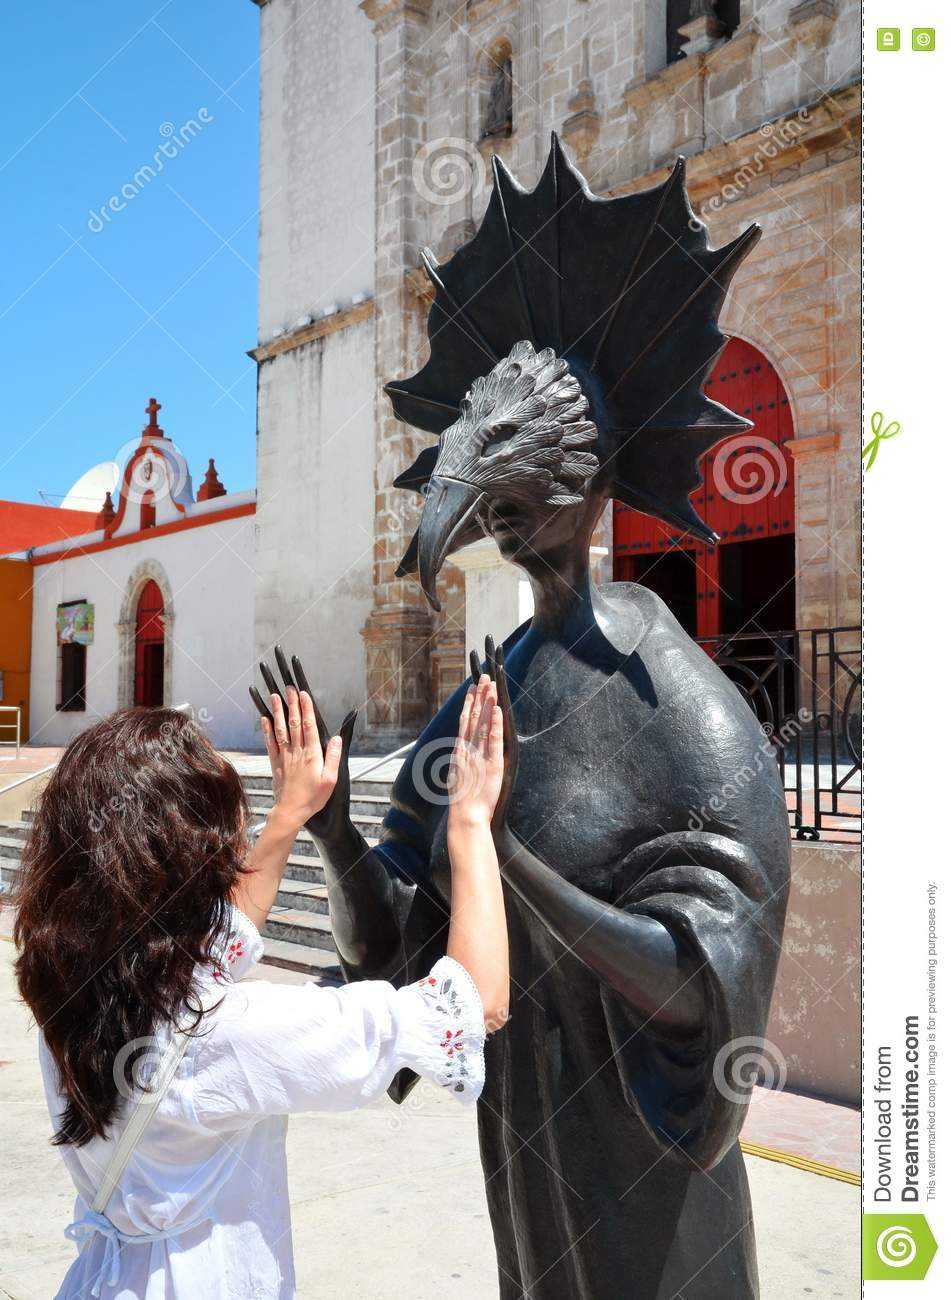 Campeche, Mexico-February 18, 2014: Women on street in Campeche City Mexico